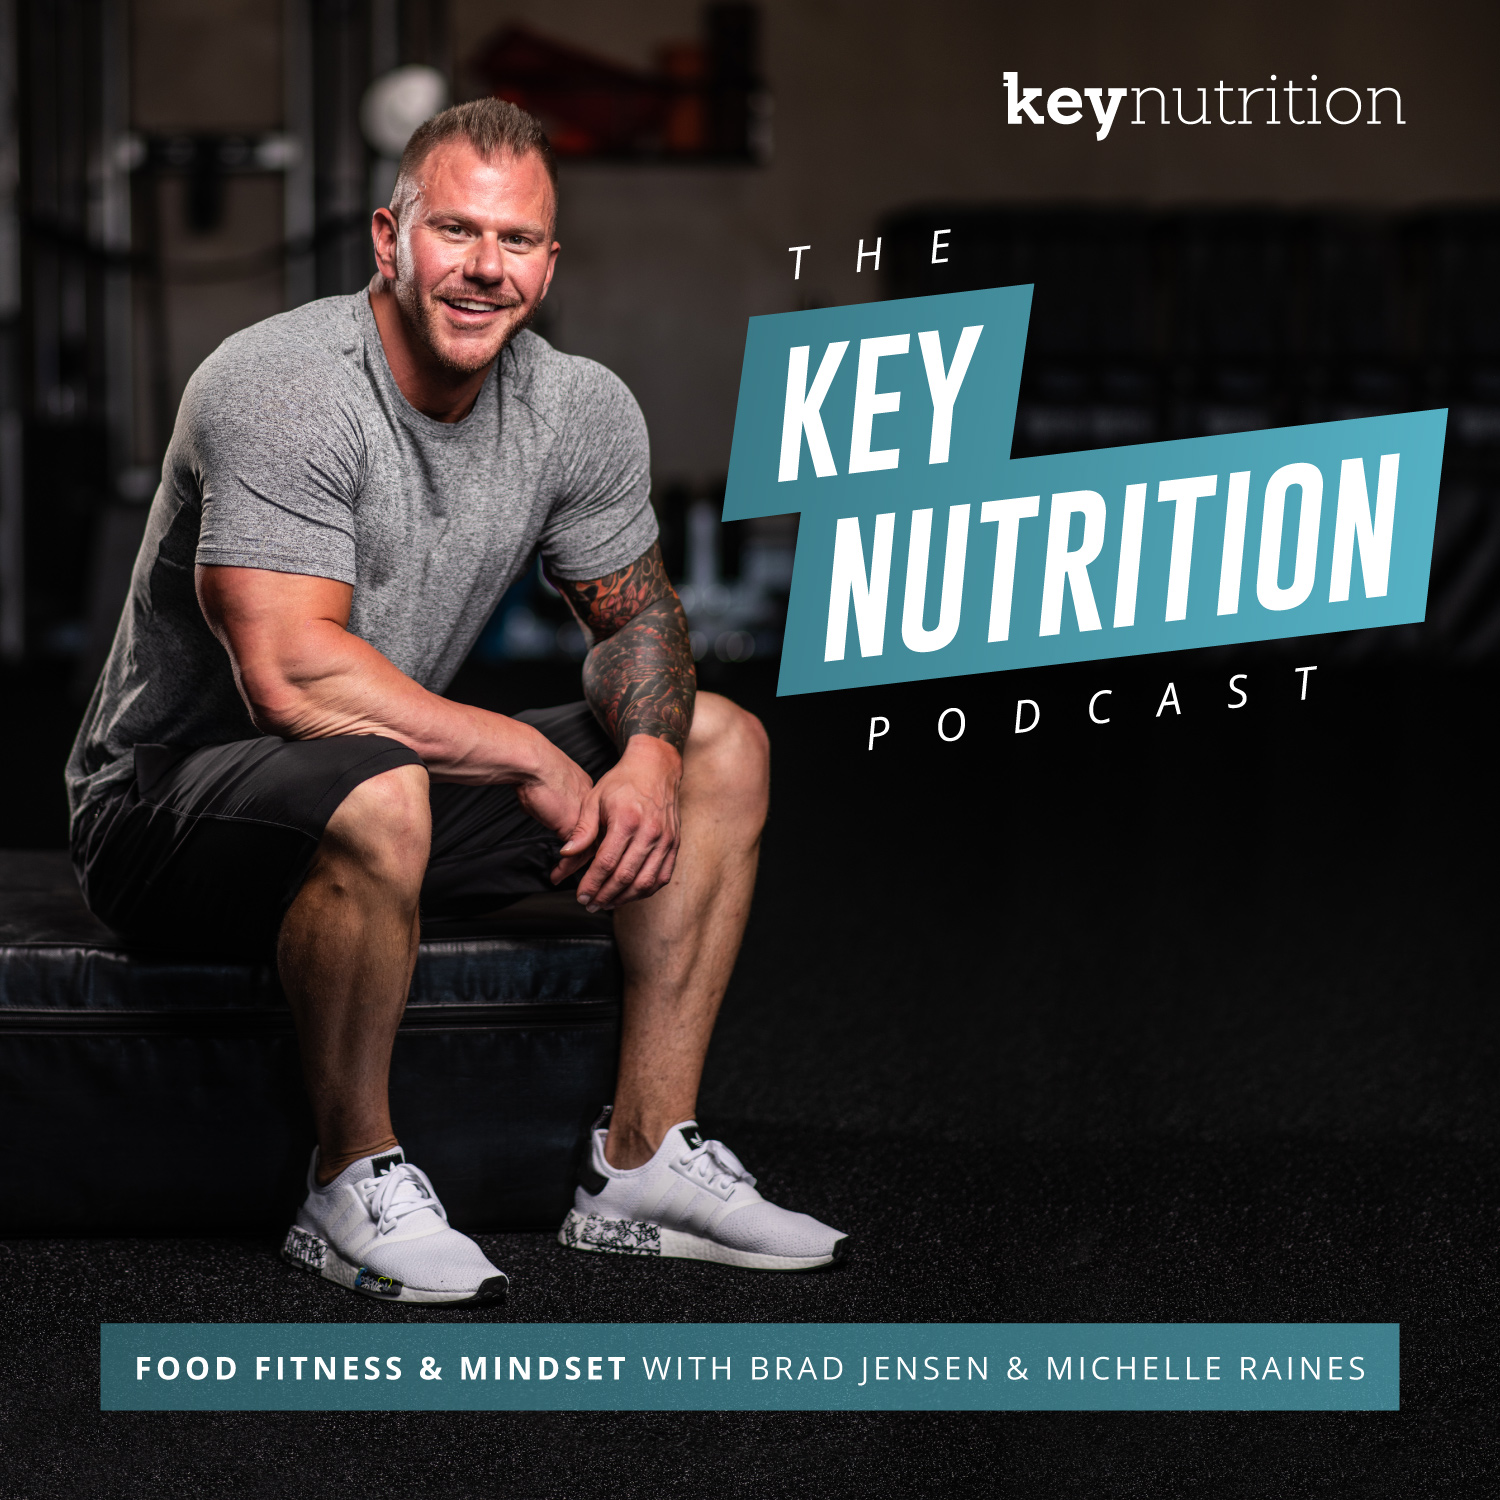 KNP228 – The Over-Obsessive Diet and Exercise Cycle With Natalie Newhart